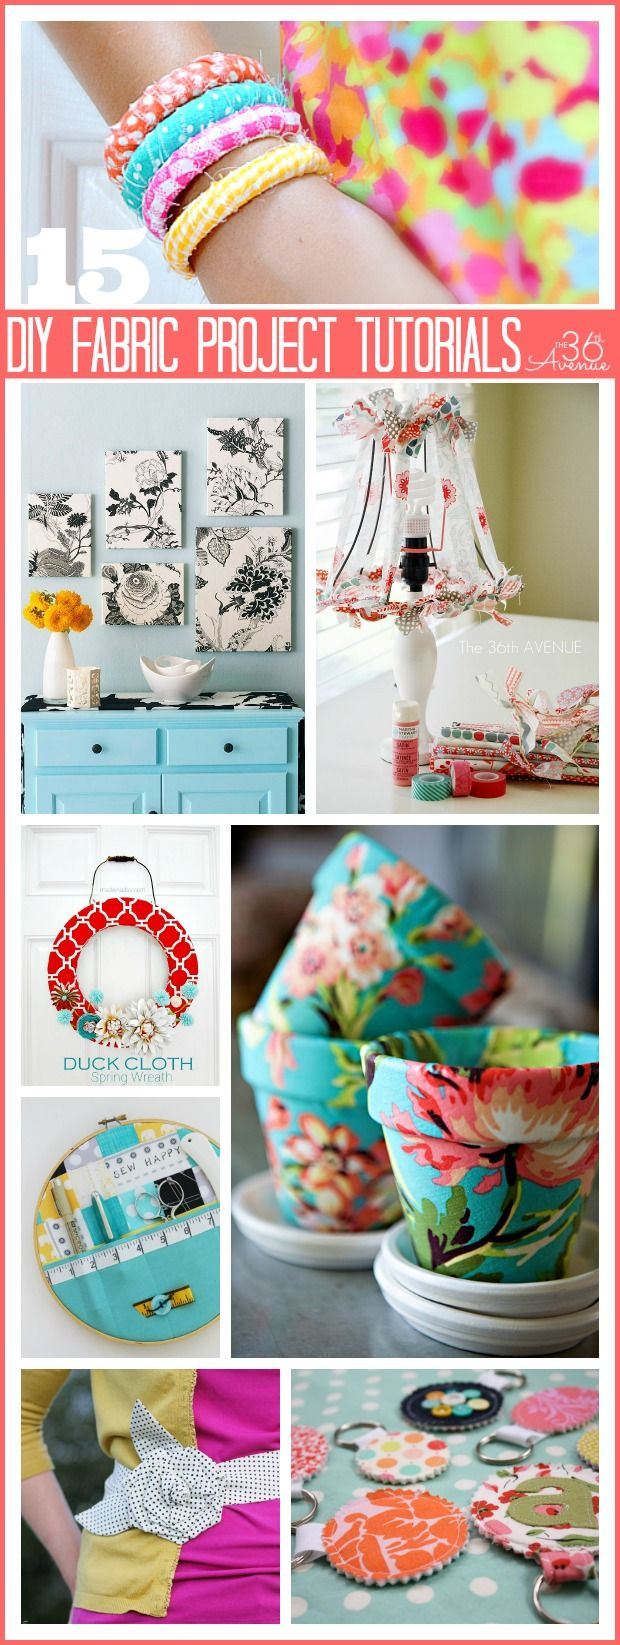 15 Fabric Projects And Tutorial Diy And Crafts Sewing Diy Fabric Fabric Projects